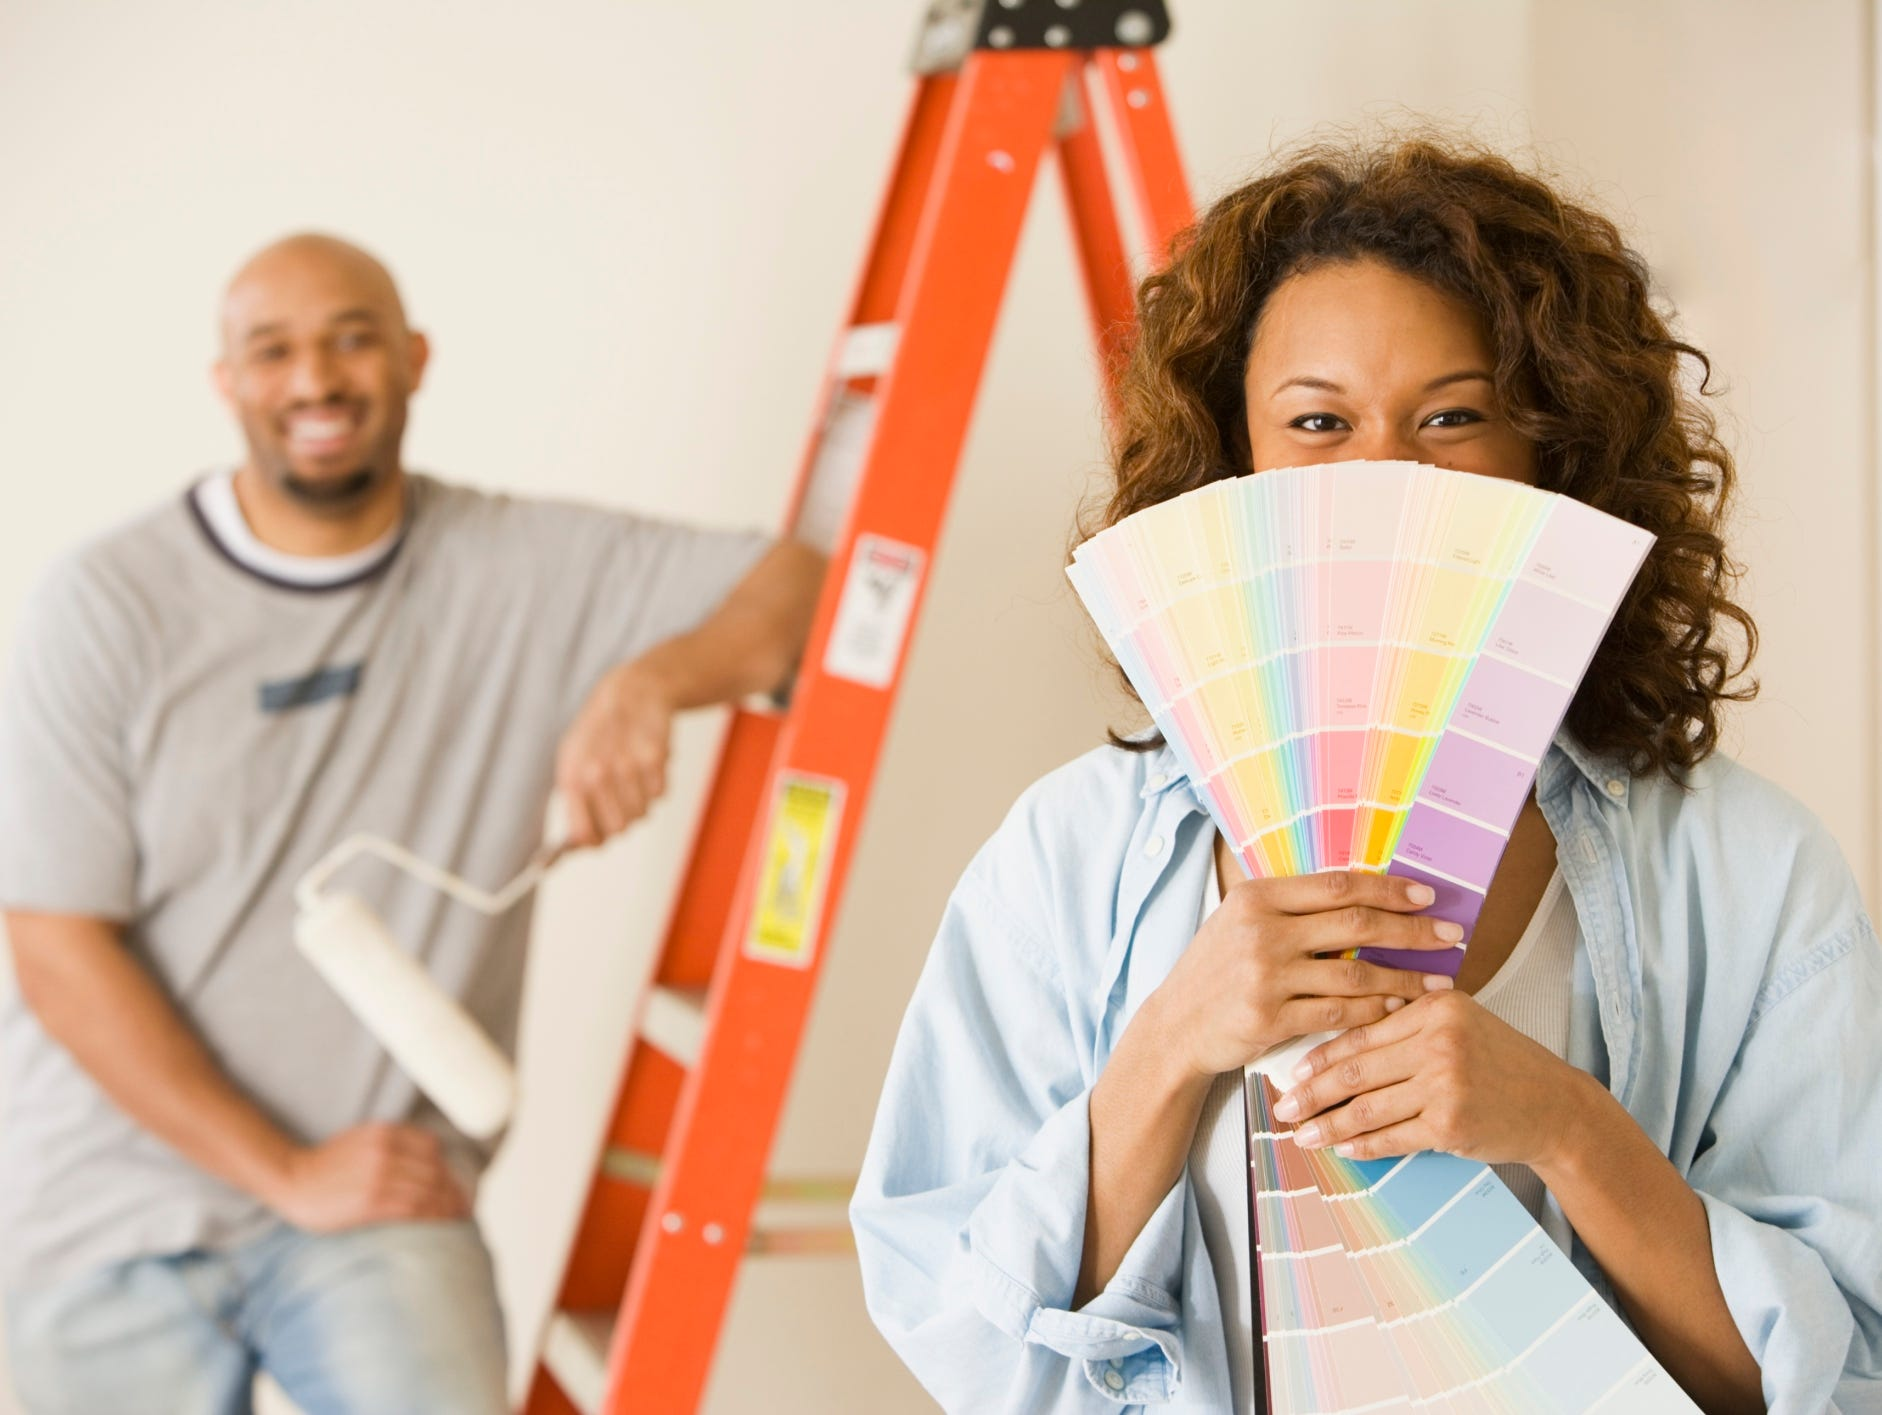 March Insiders can enter to win a $200 Home Depot gift card to help pay for a DIY project. Enter 3/1-3/31